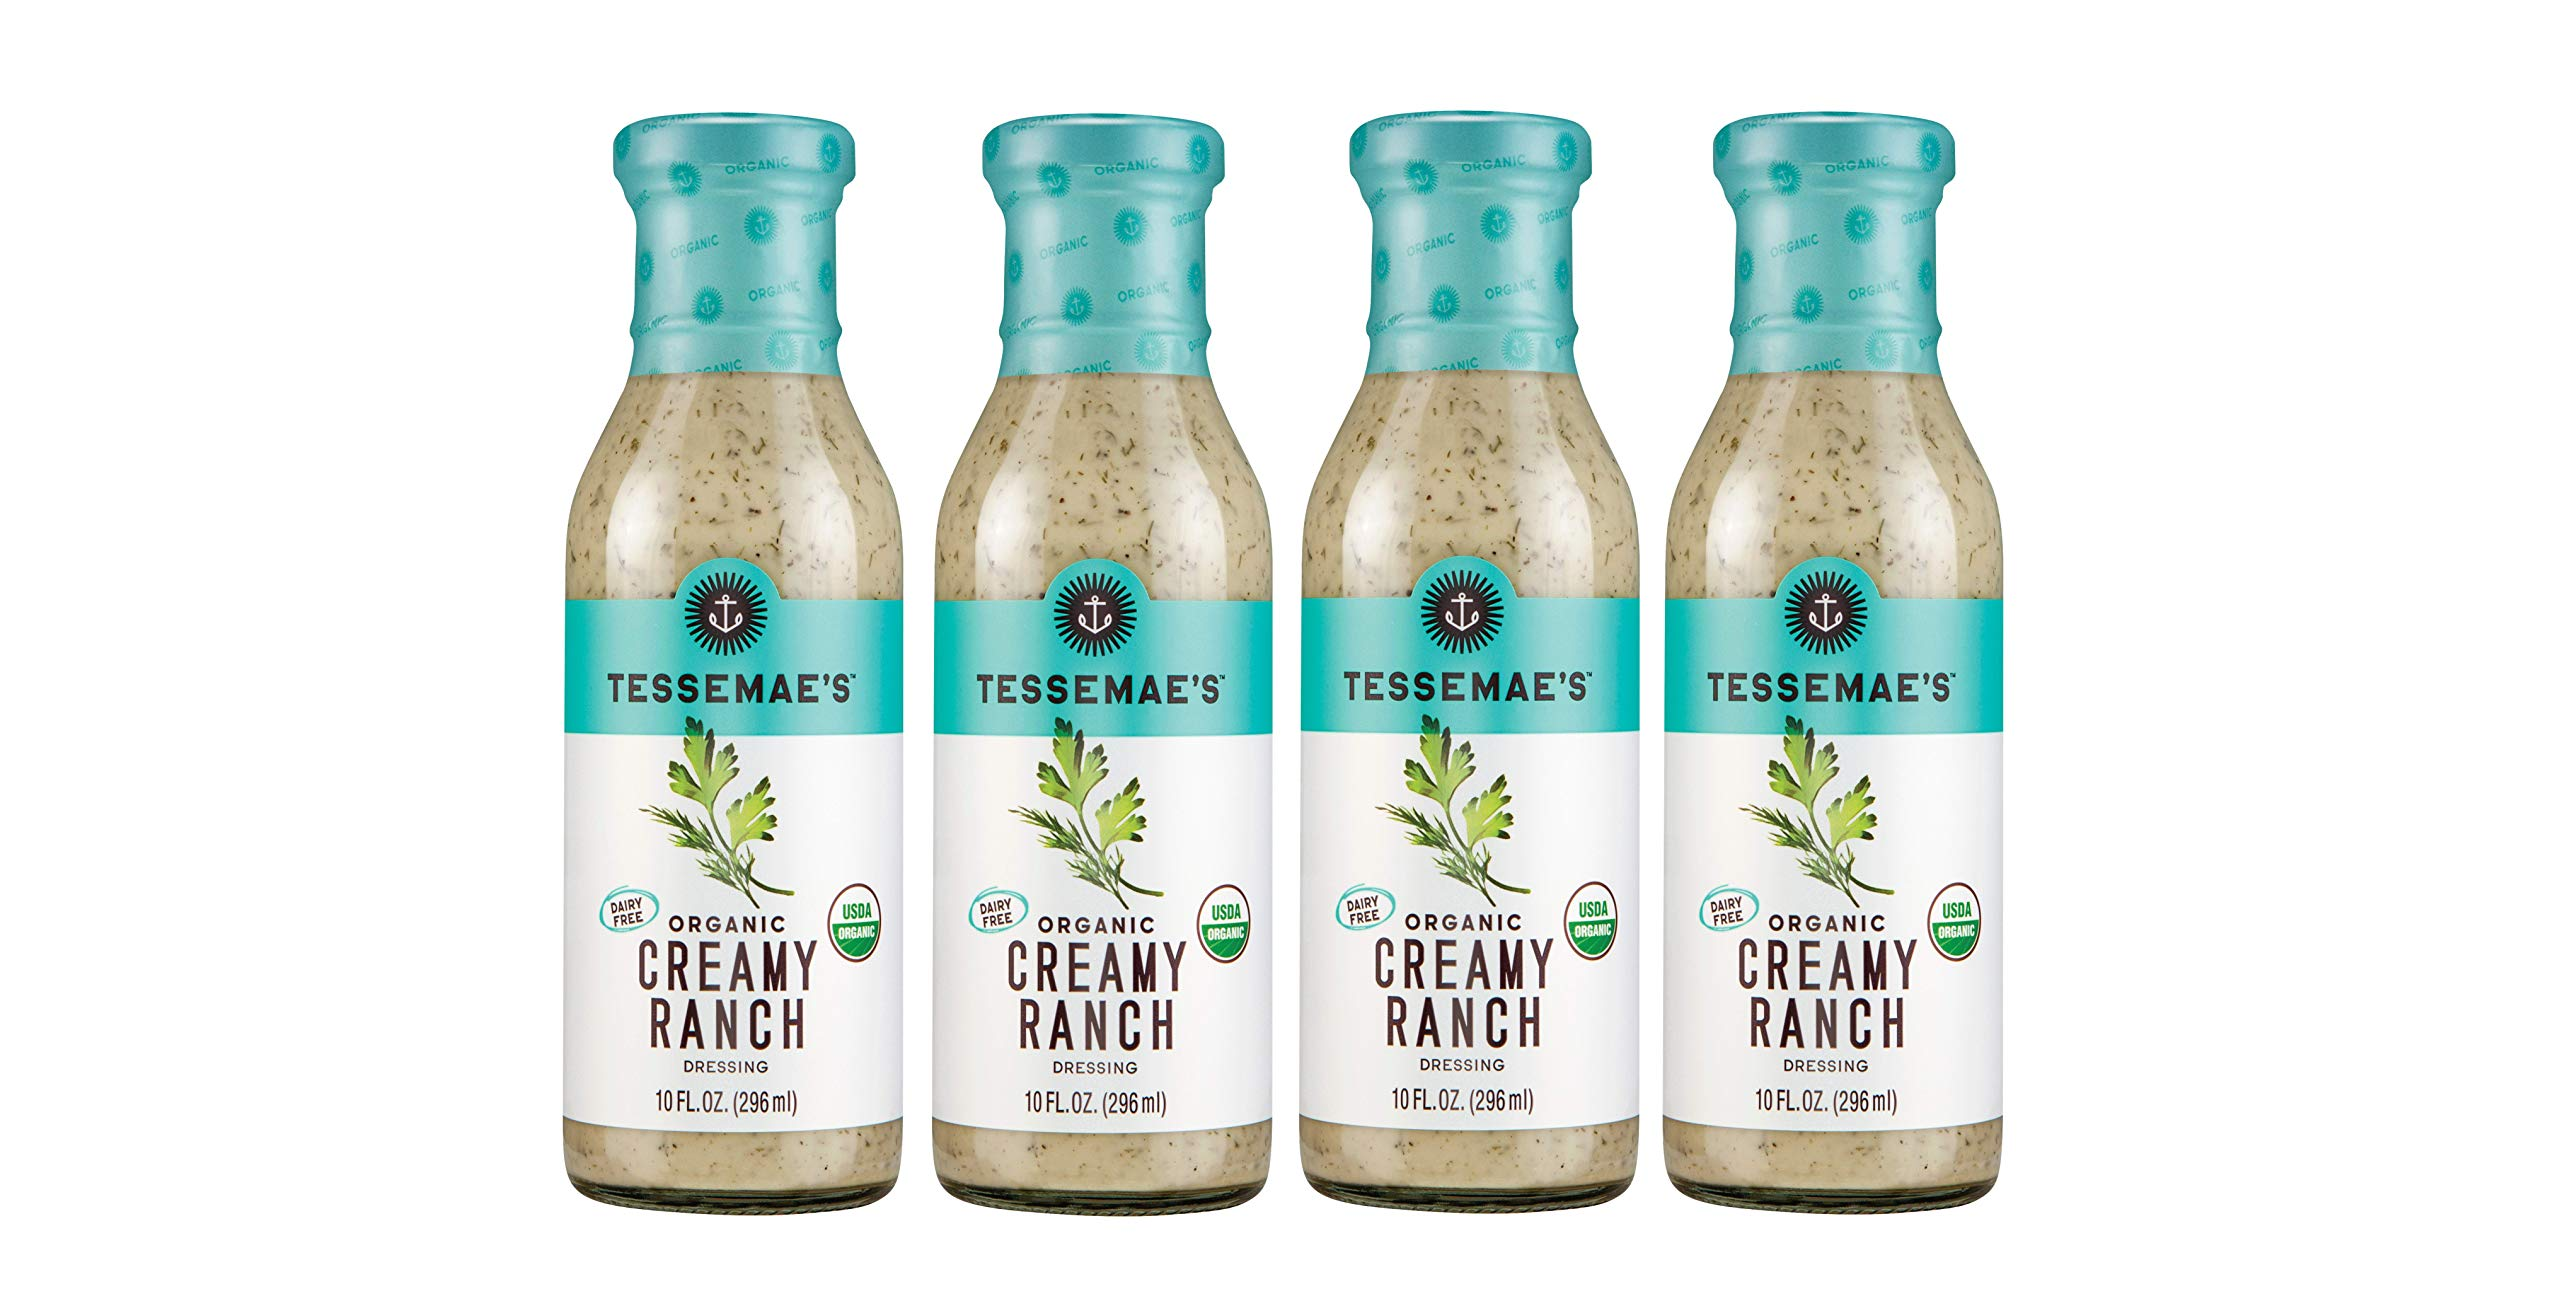 Tessemae's Organic Creamy Ranch Dressing 4 pack, Whole30 Certified, keto diet approved, USDA Organic, soy-free, dairy-free, gluten-free, sugar-free by Tessemae's